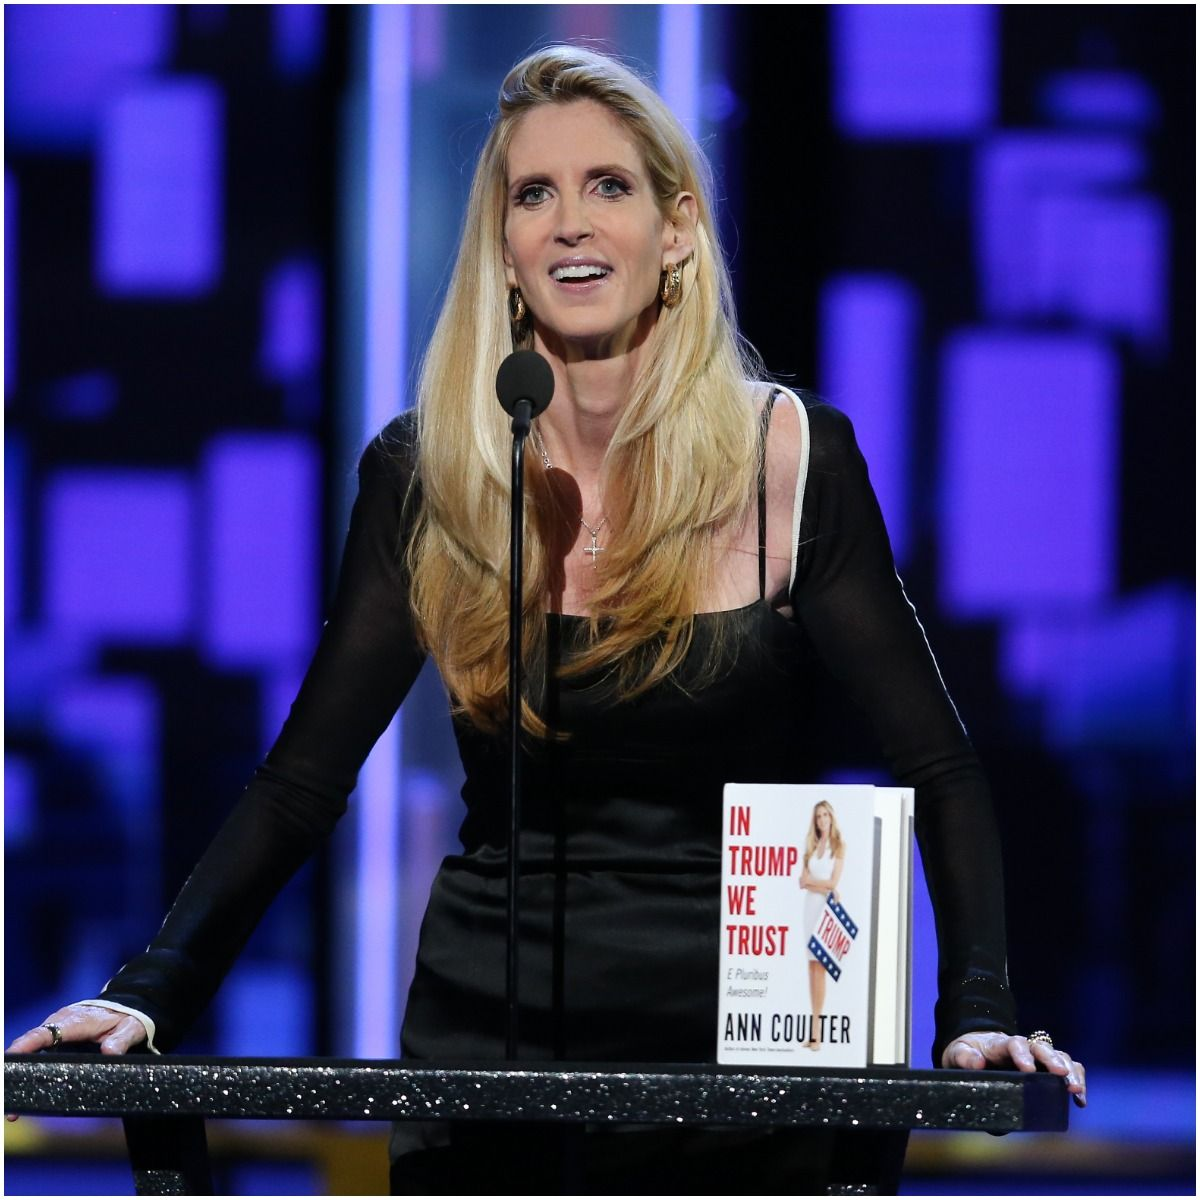 Ann Coulter husband